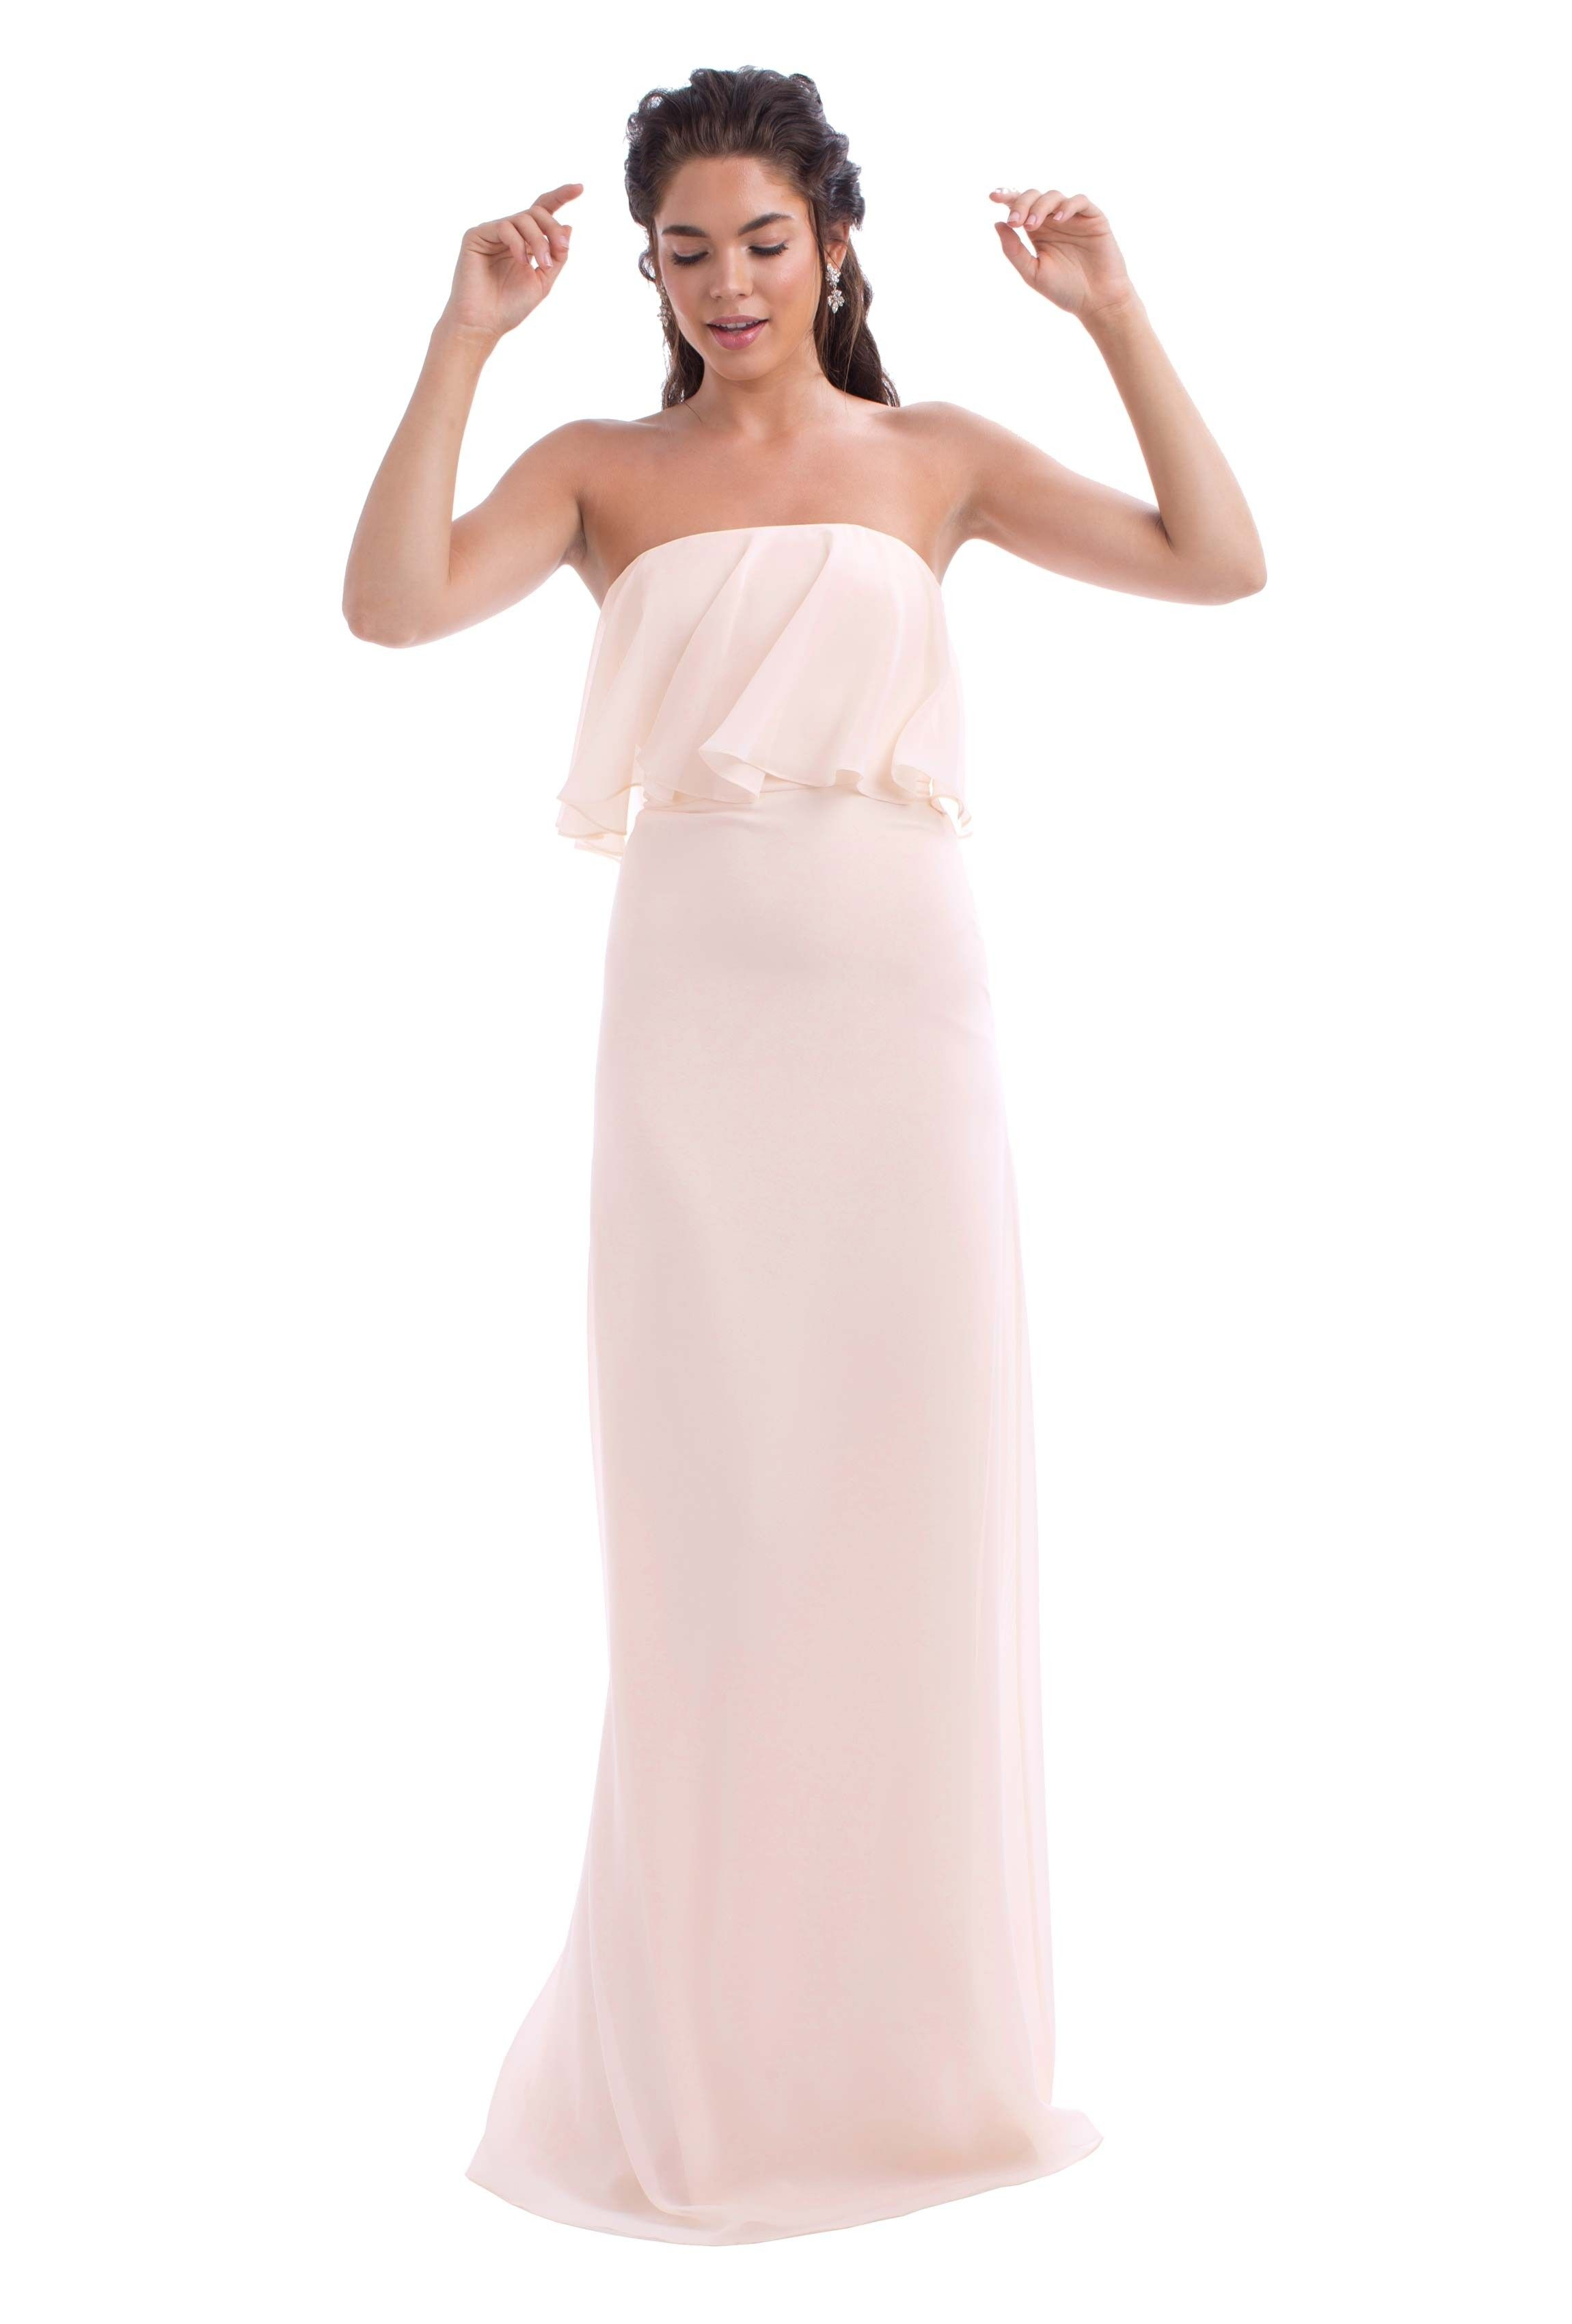 Monique lhuillier cara chiffon bridesmaid dresses a floor length strapless chiffon bridesmaid dress with ruffle detail in seven colors ombrellifo Images